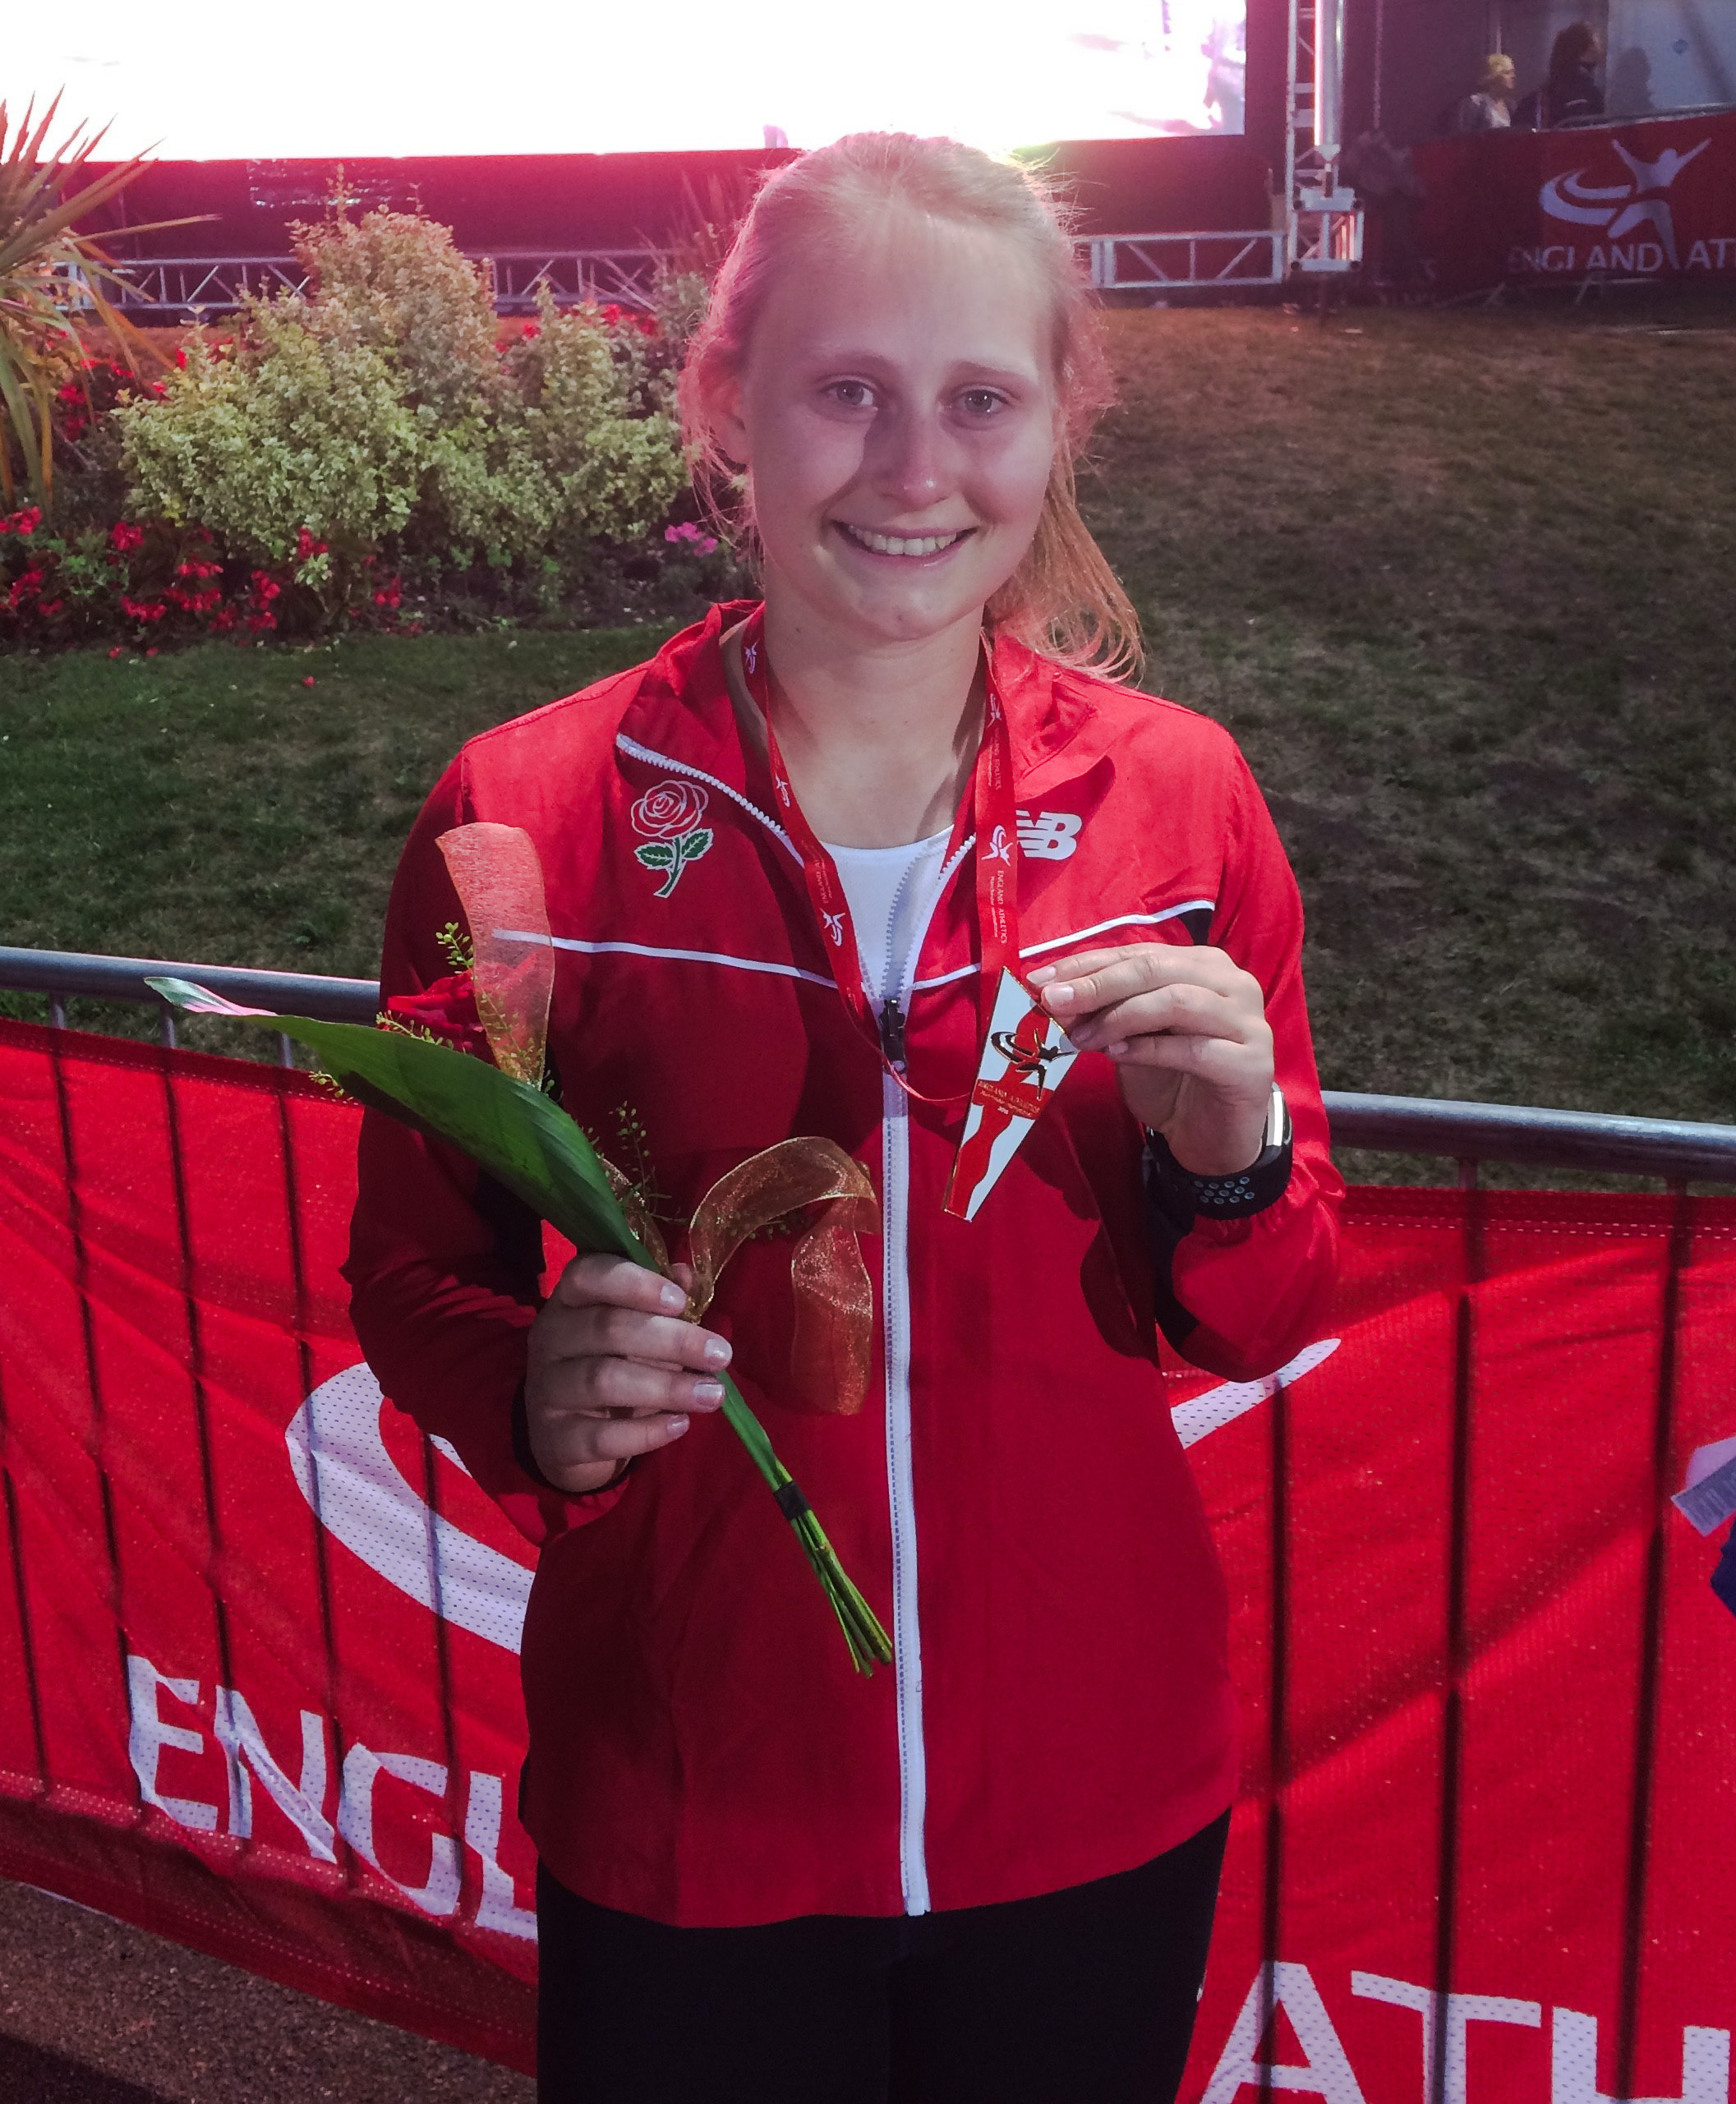 DELIGHT: Radley's discus thrower Kathyrn Woodcock with her bronze medal from the Manchester International